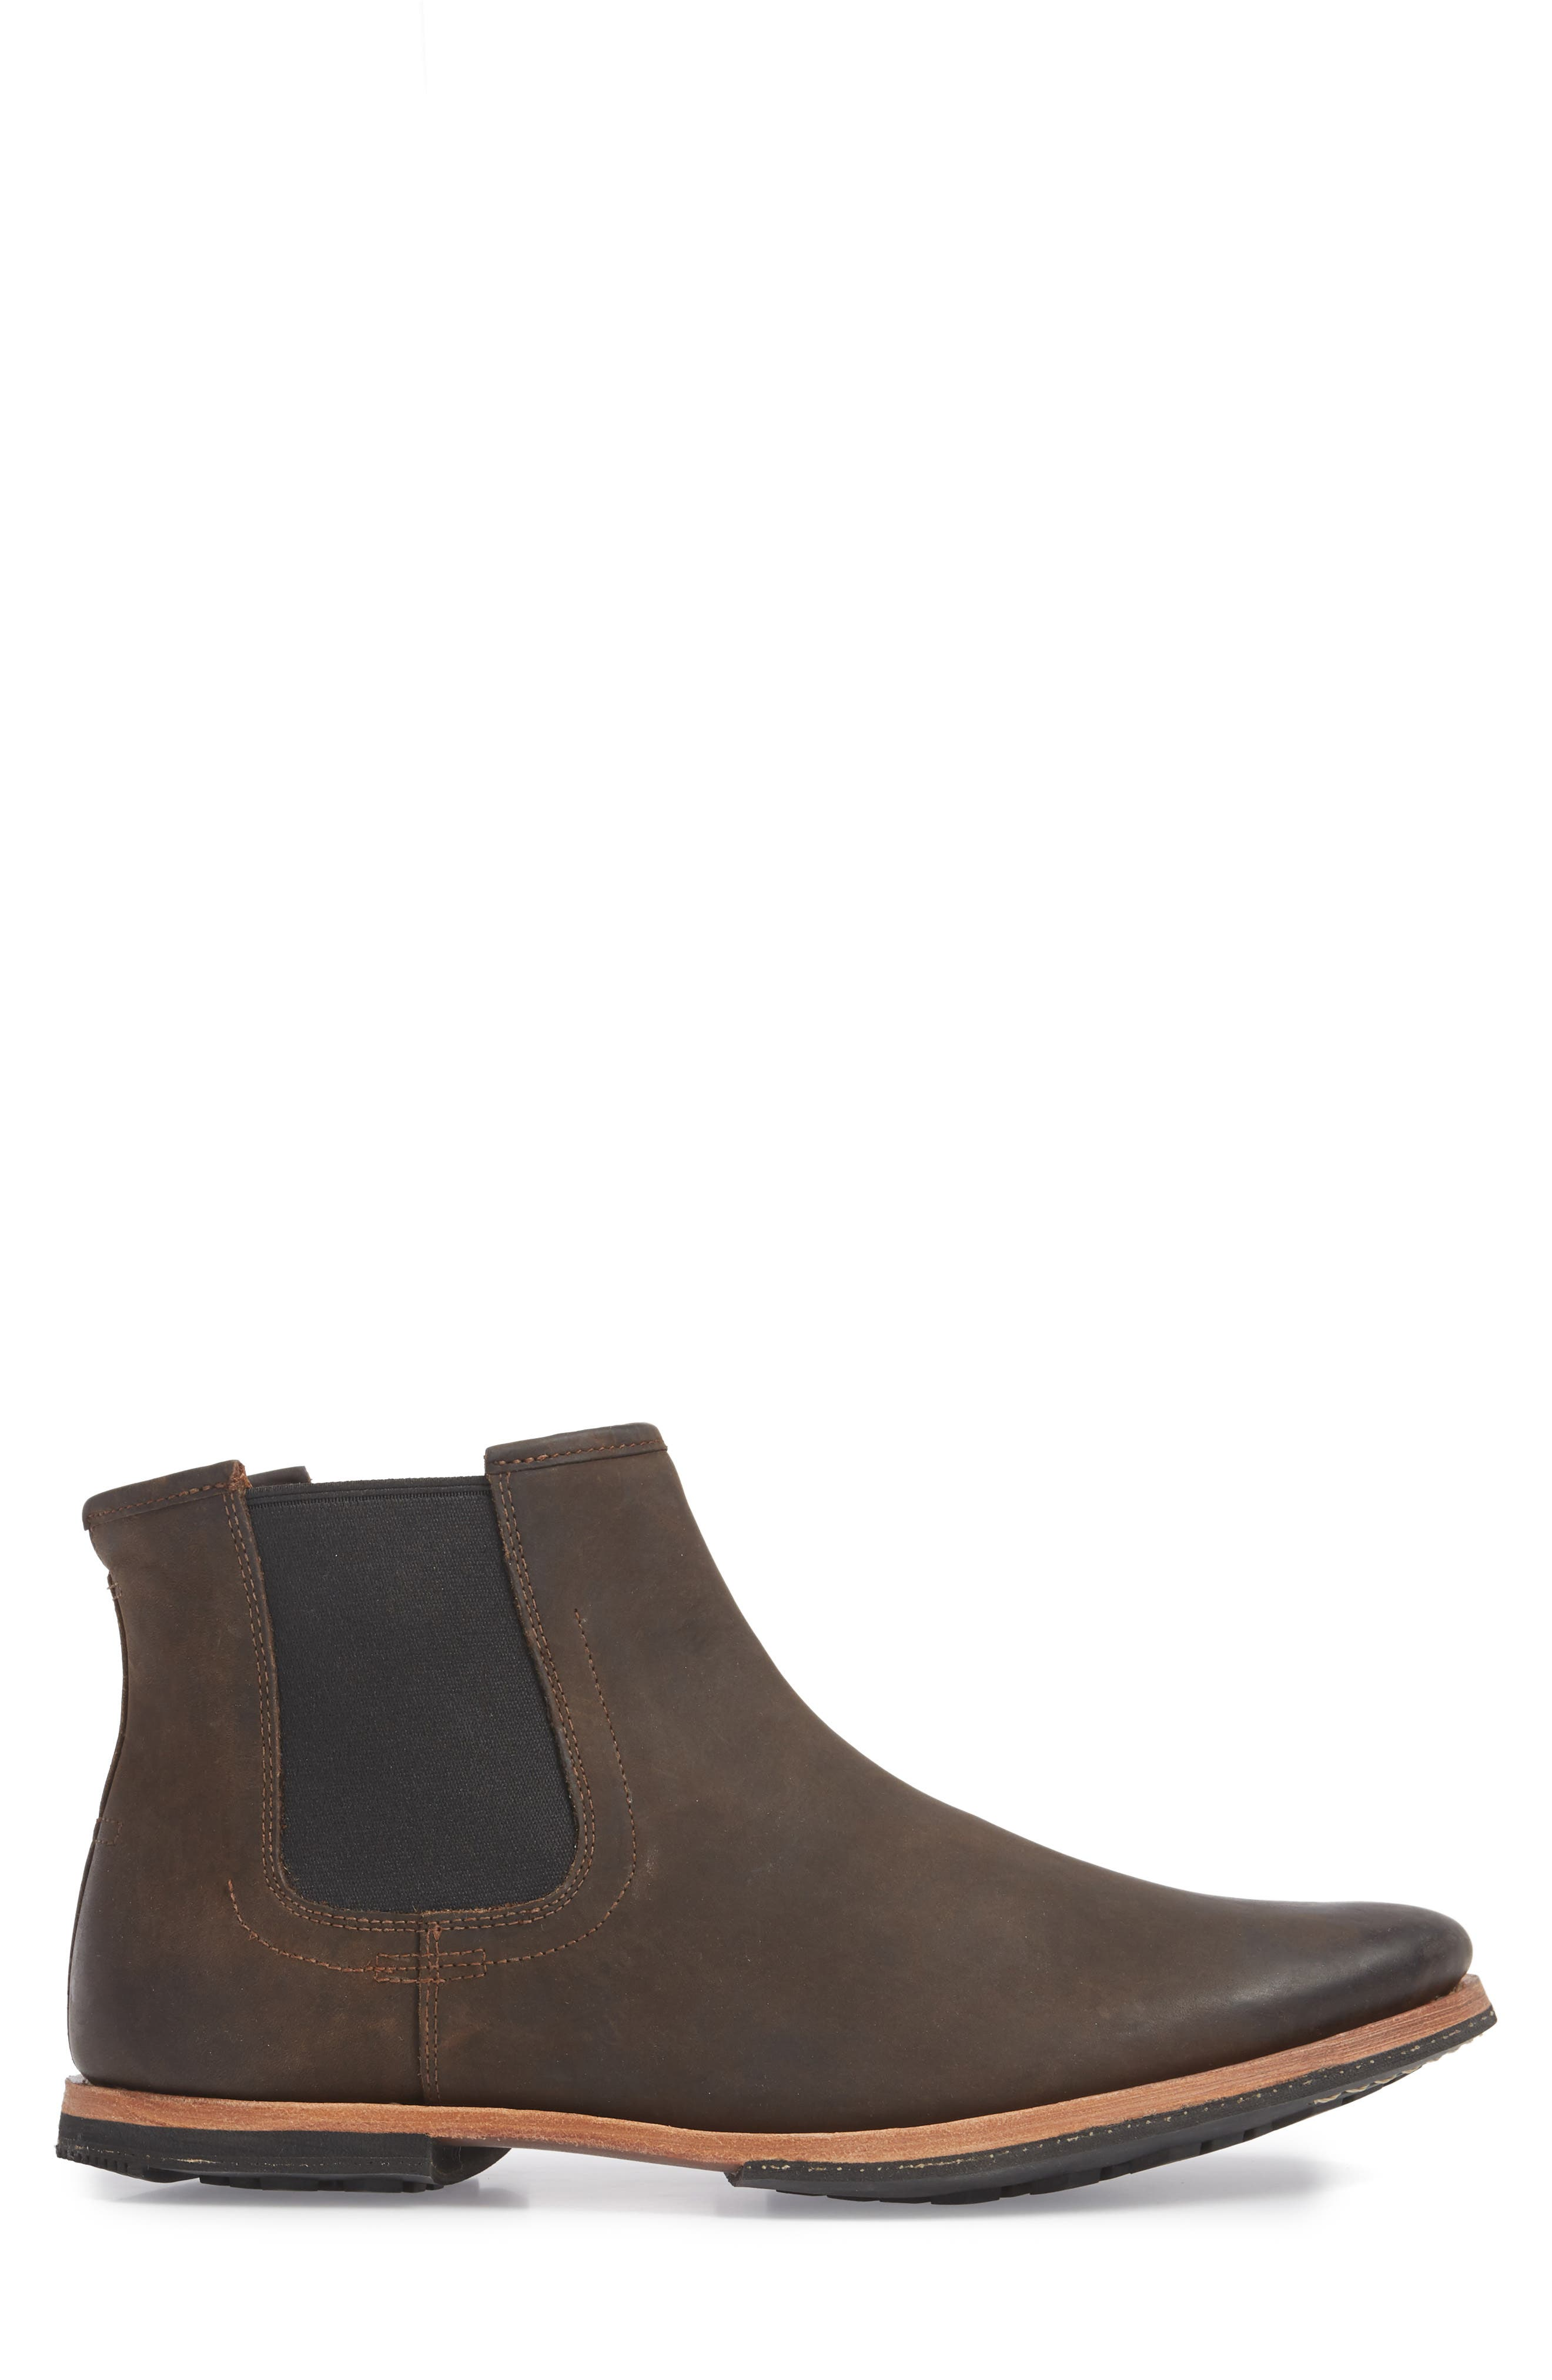 Wodehouse History Chelsea Boot,                             Alternate thumbnail 3, color,                             BROWN LEATHER